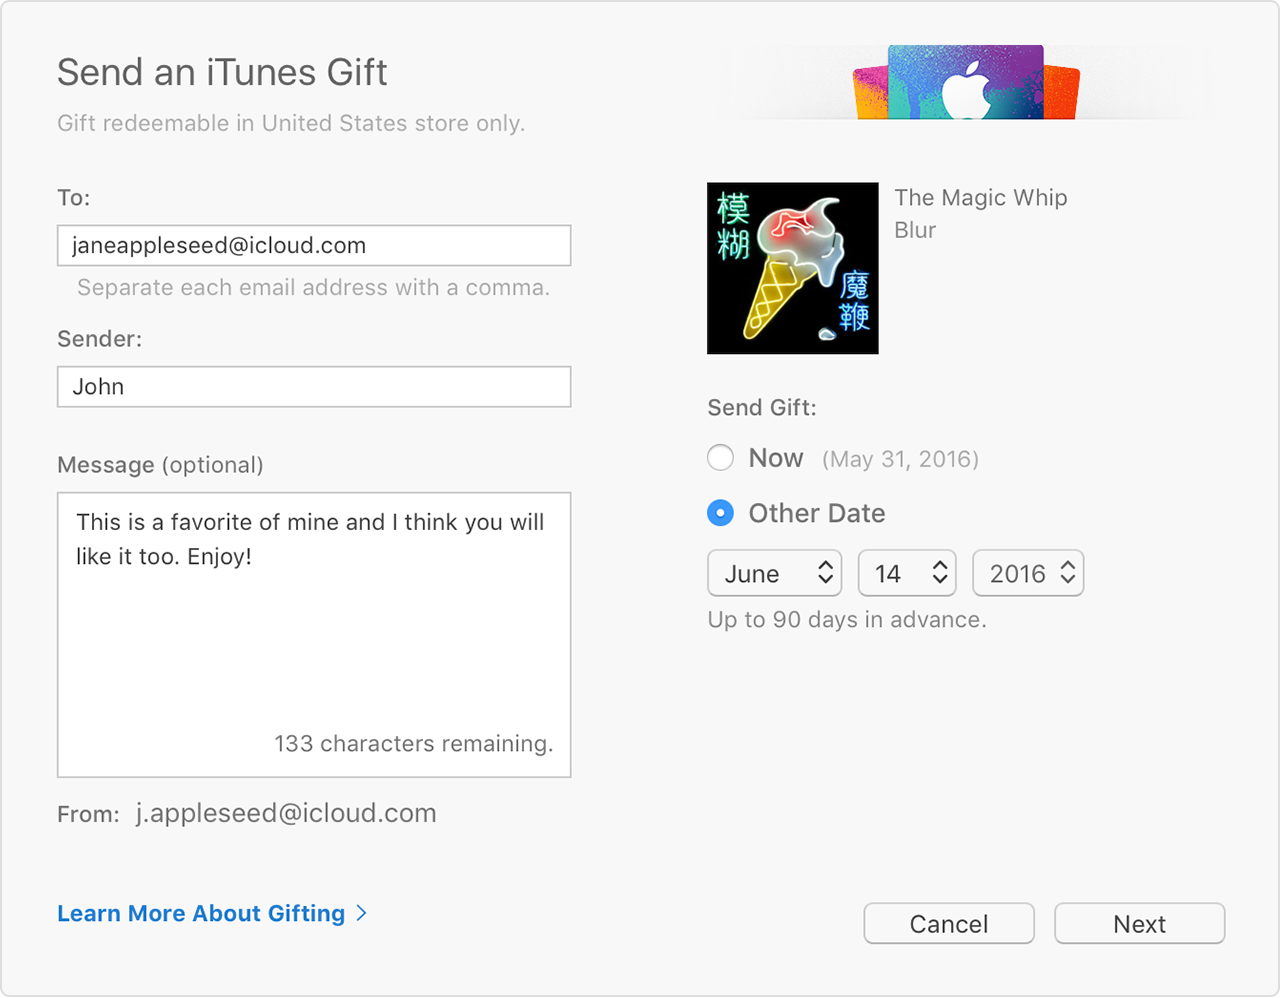 Send iTunes Gifts via email - Apple Support